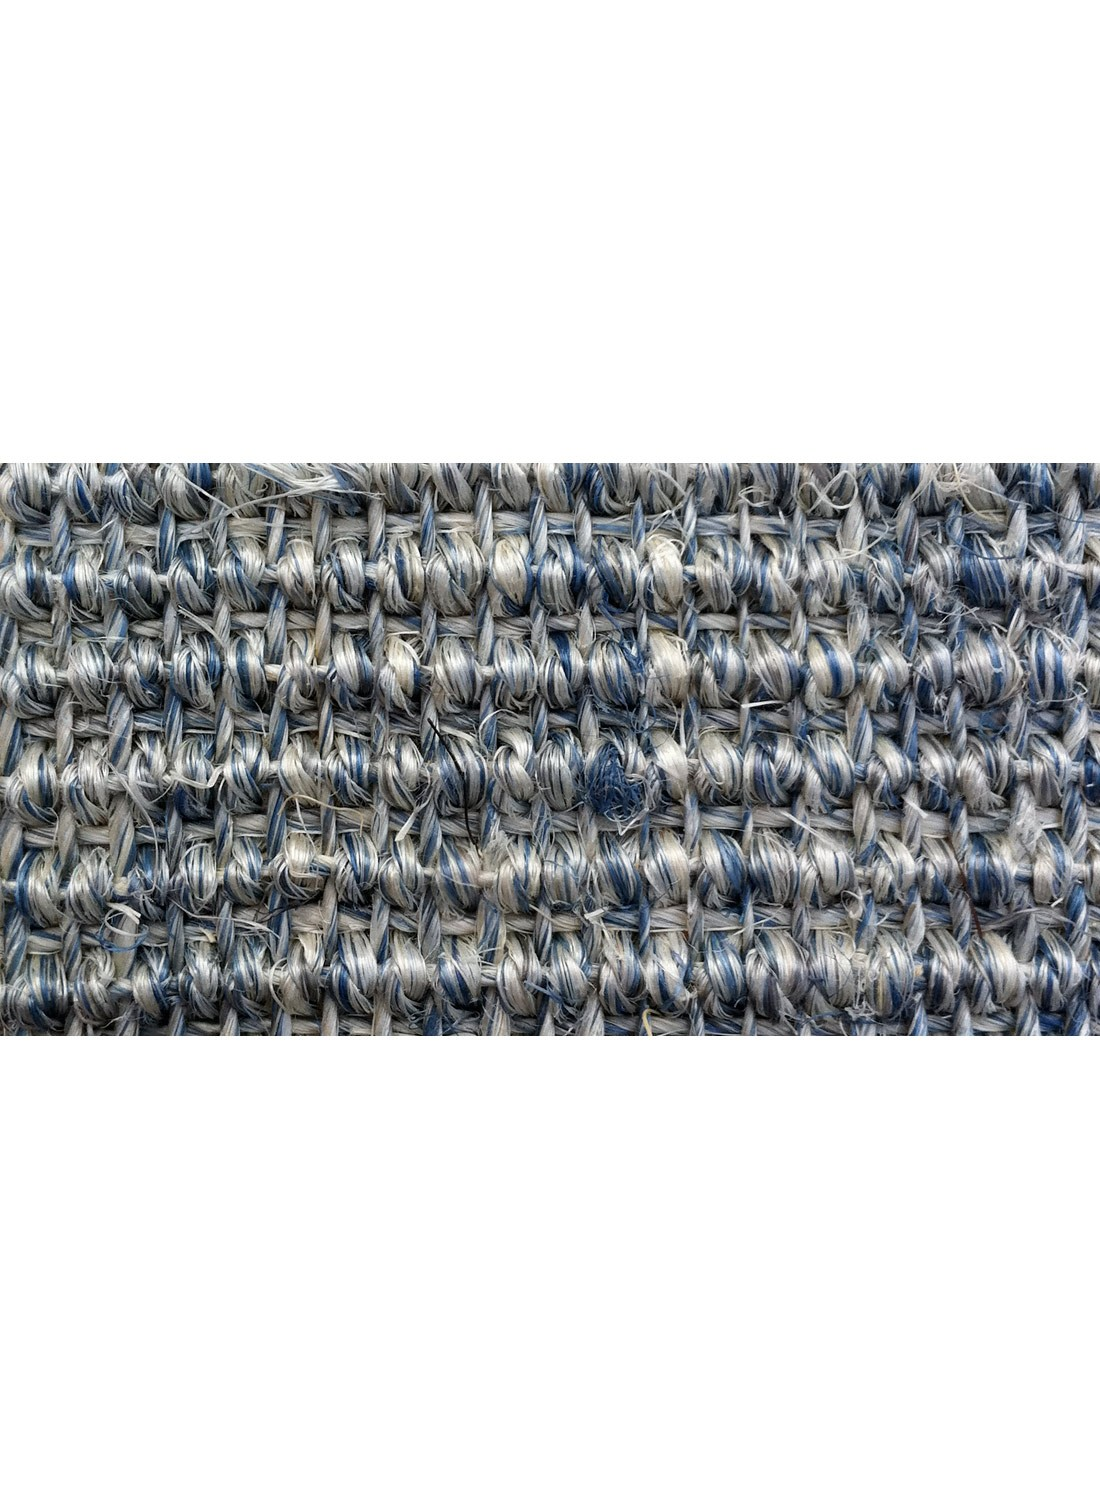 SISAL MANAUS gris bleu